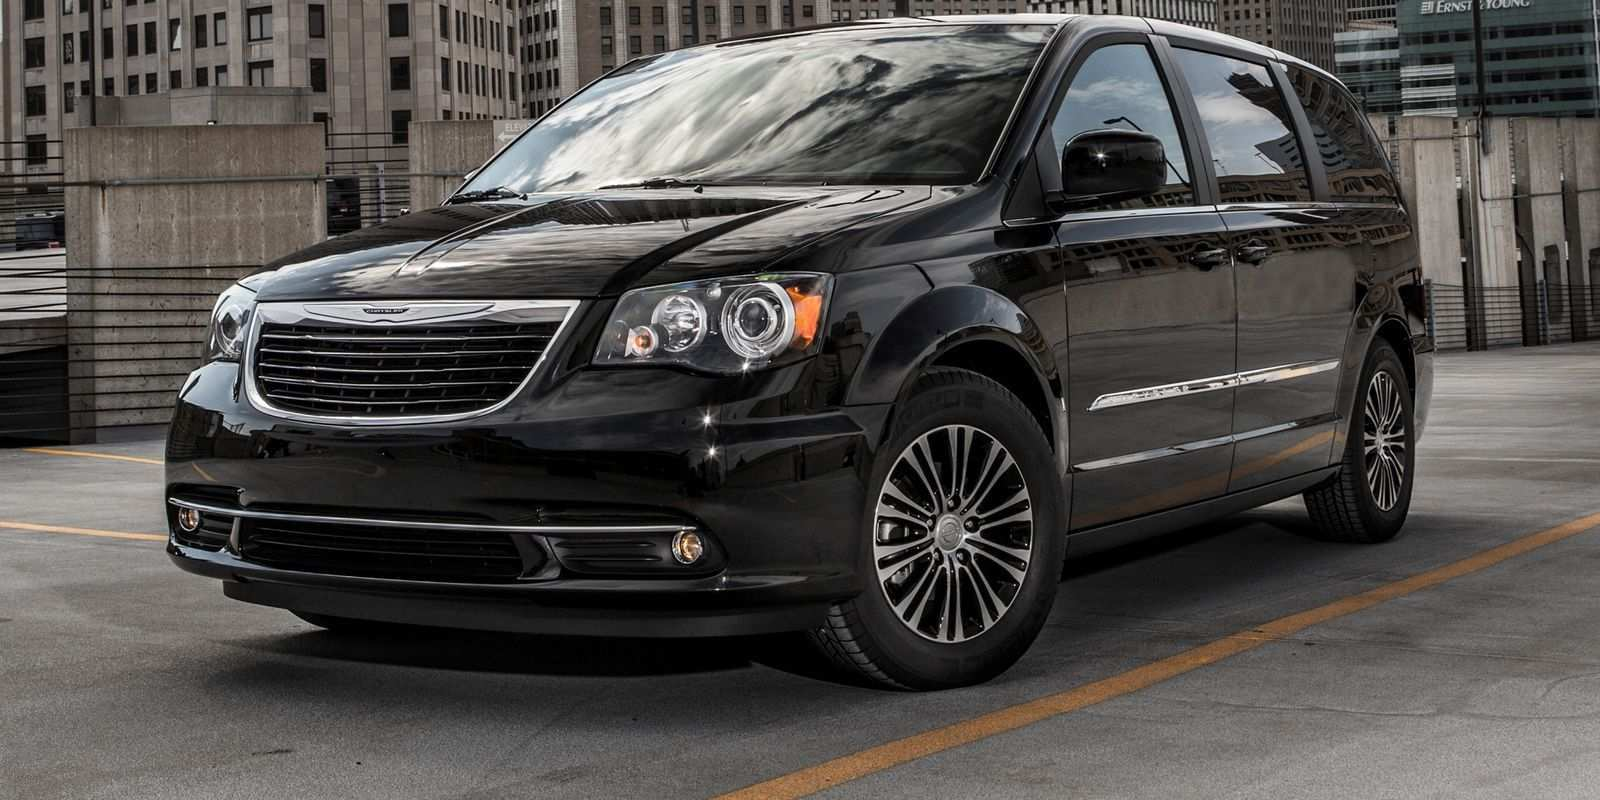 40 Best Review 2020 Chrysler Town Performance for 2020 Chrysler Town